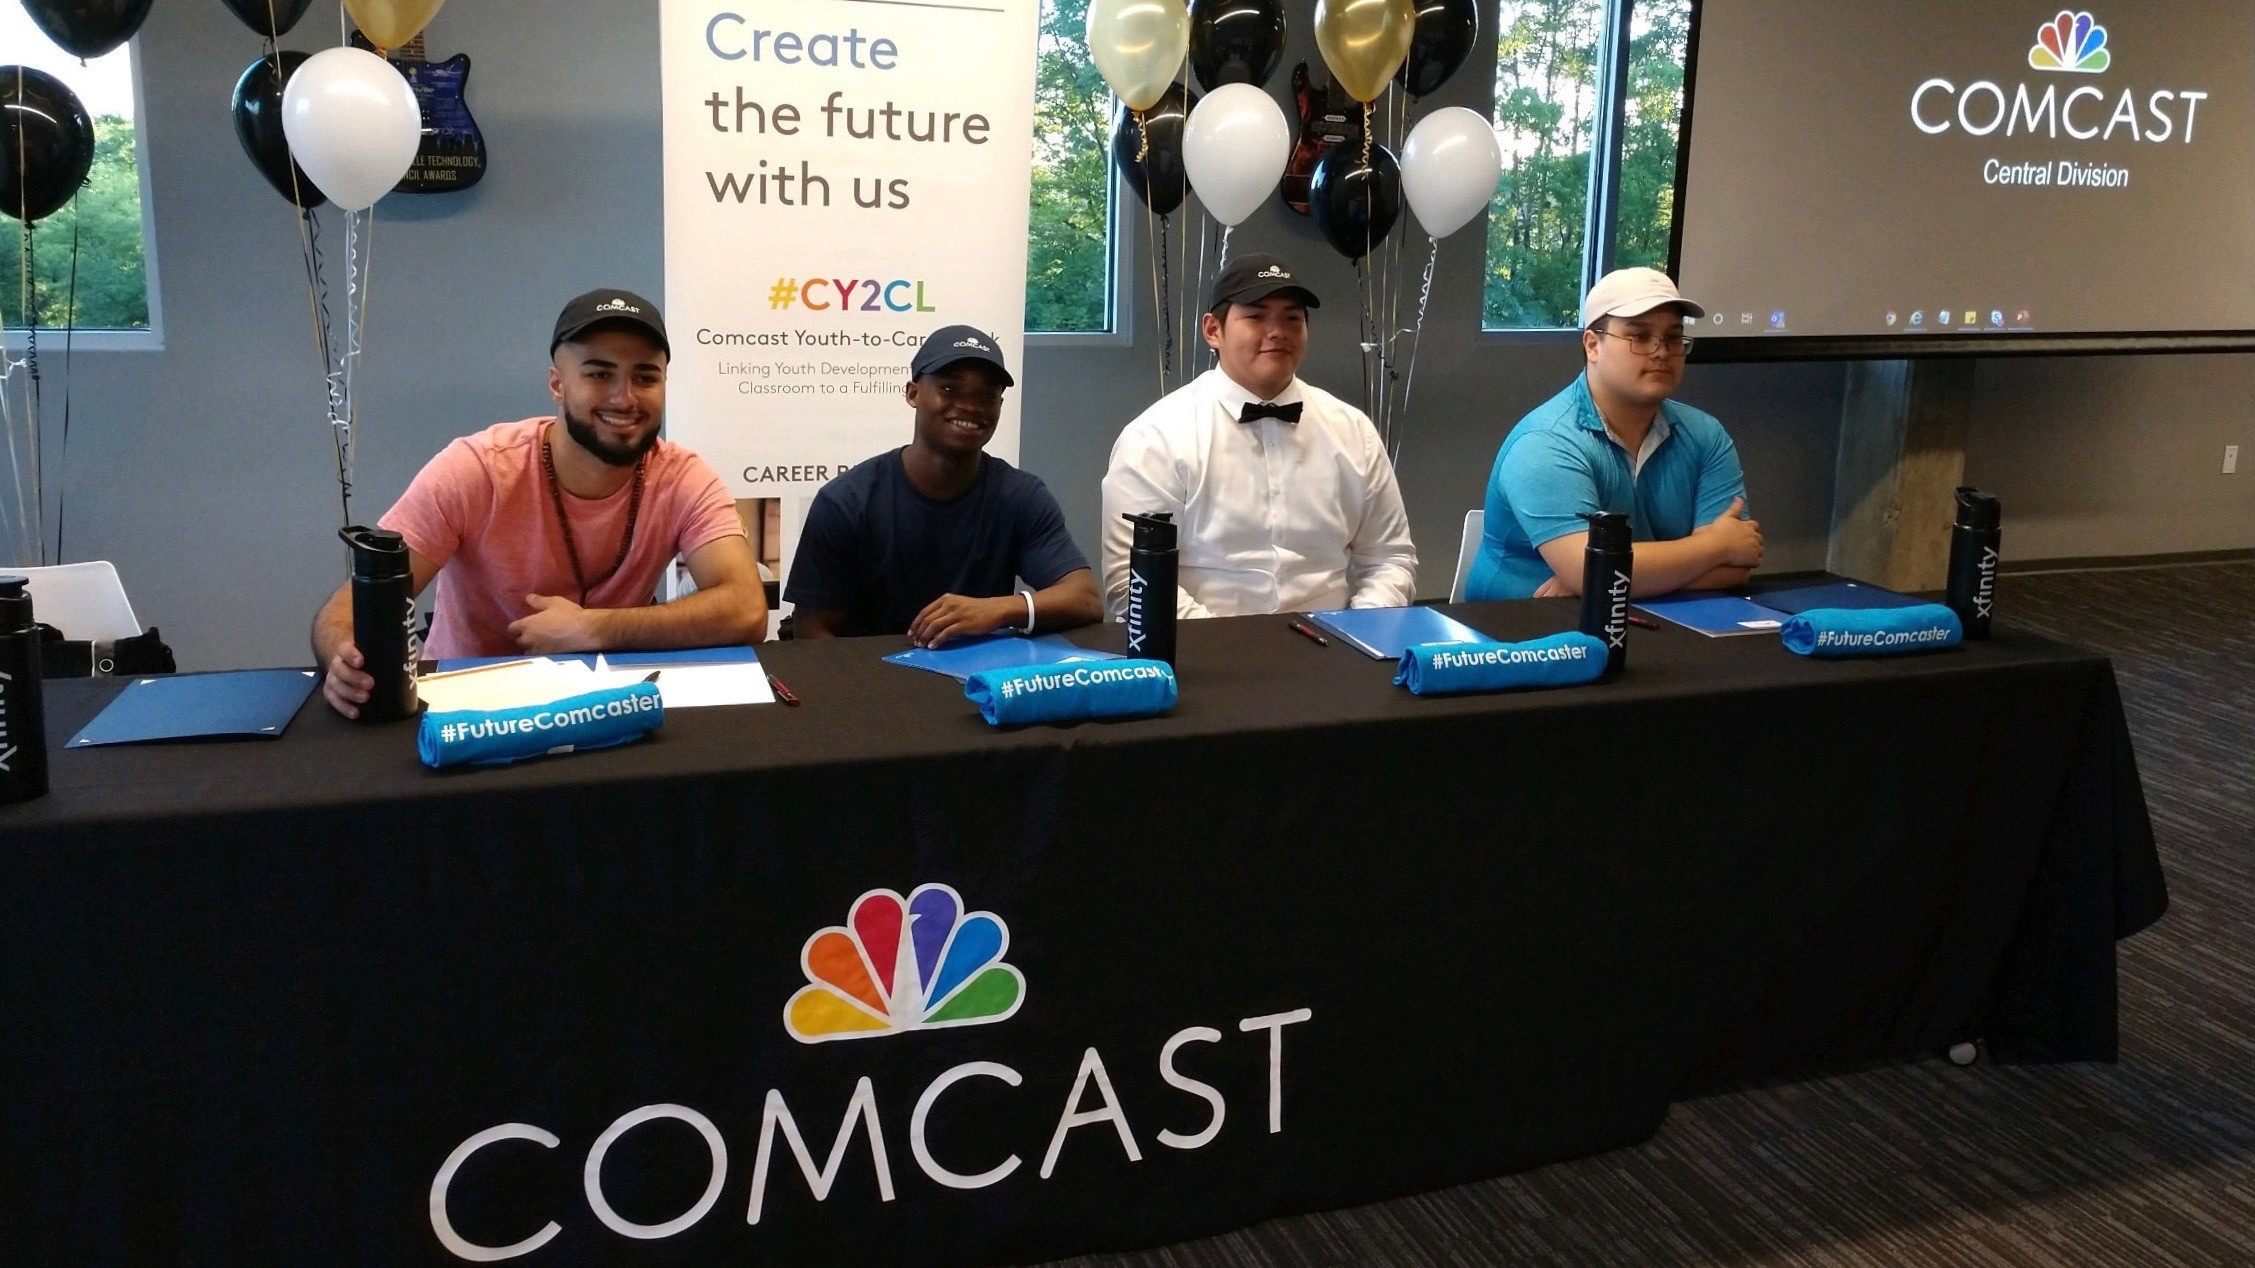 Comcast youth at a panal